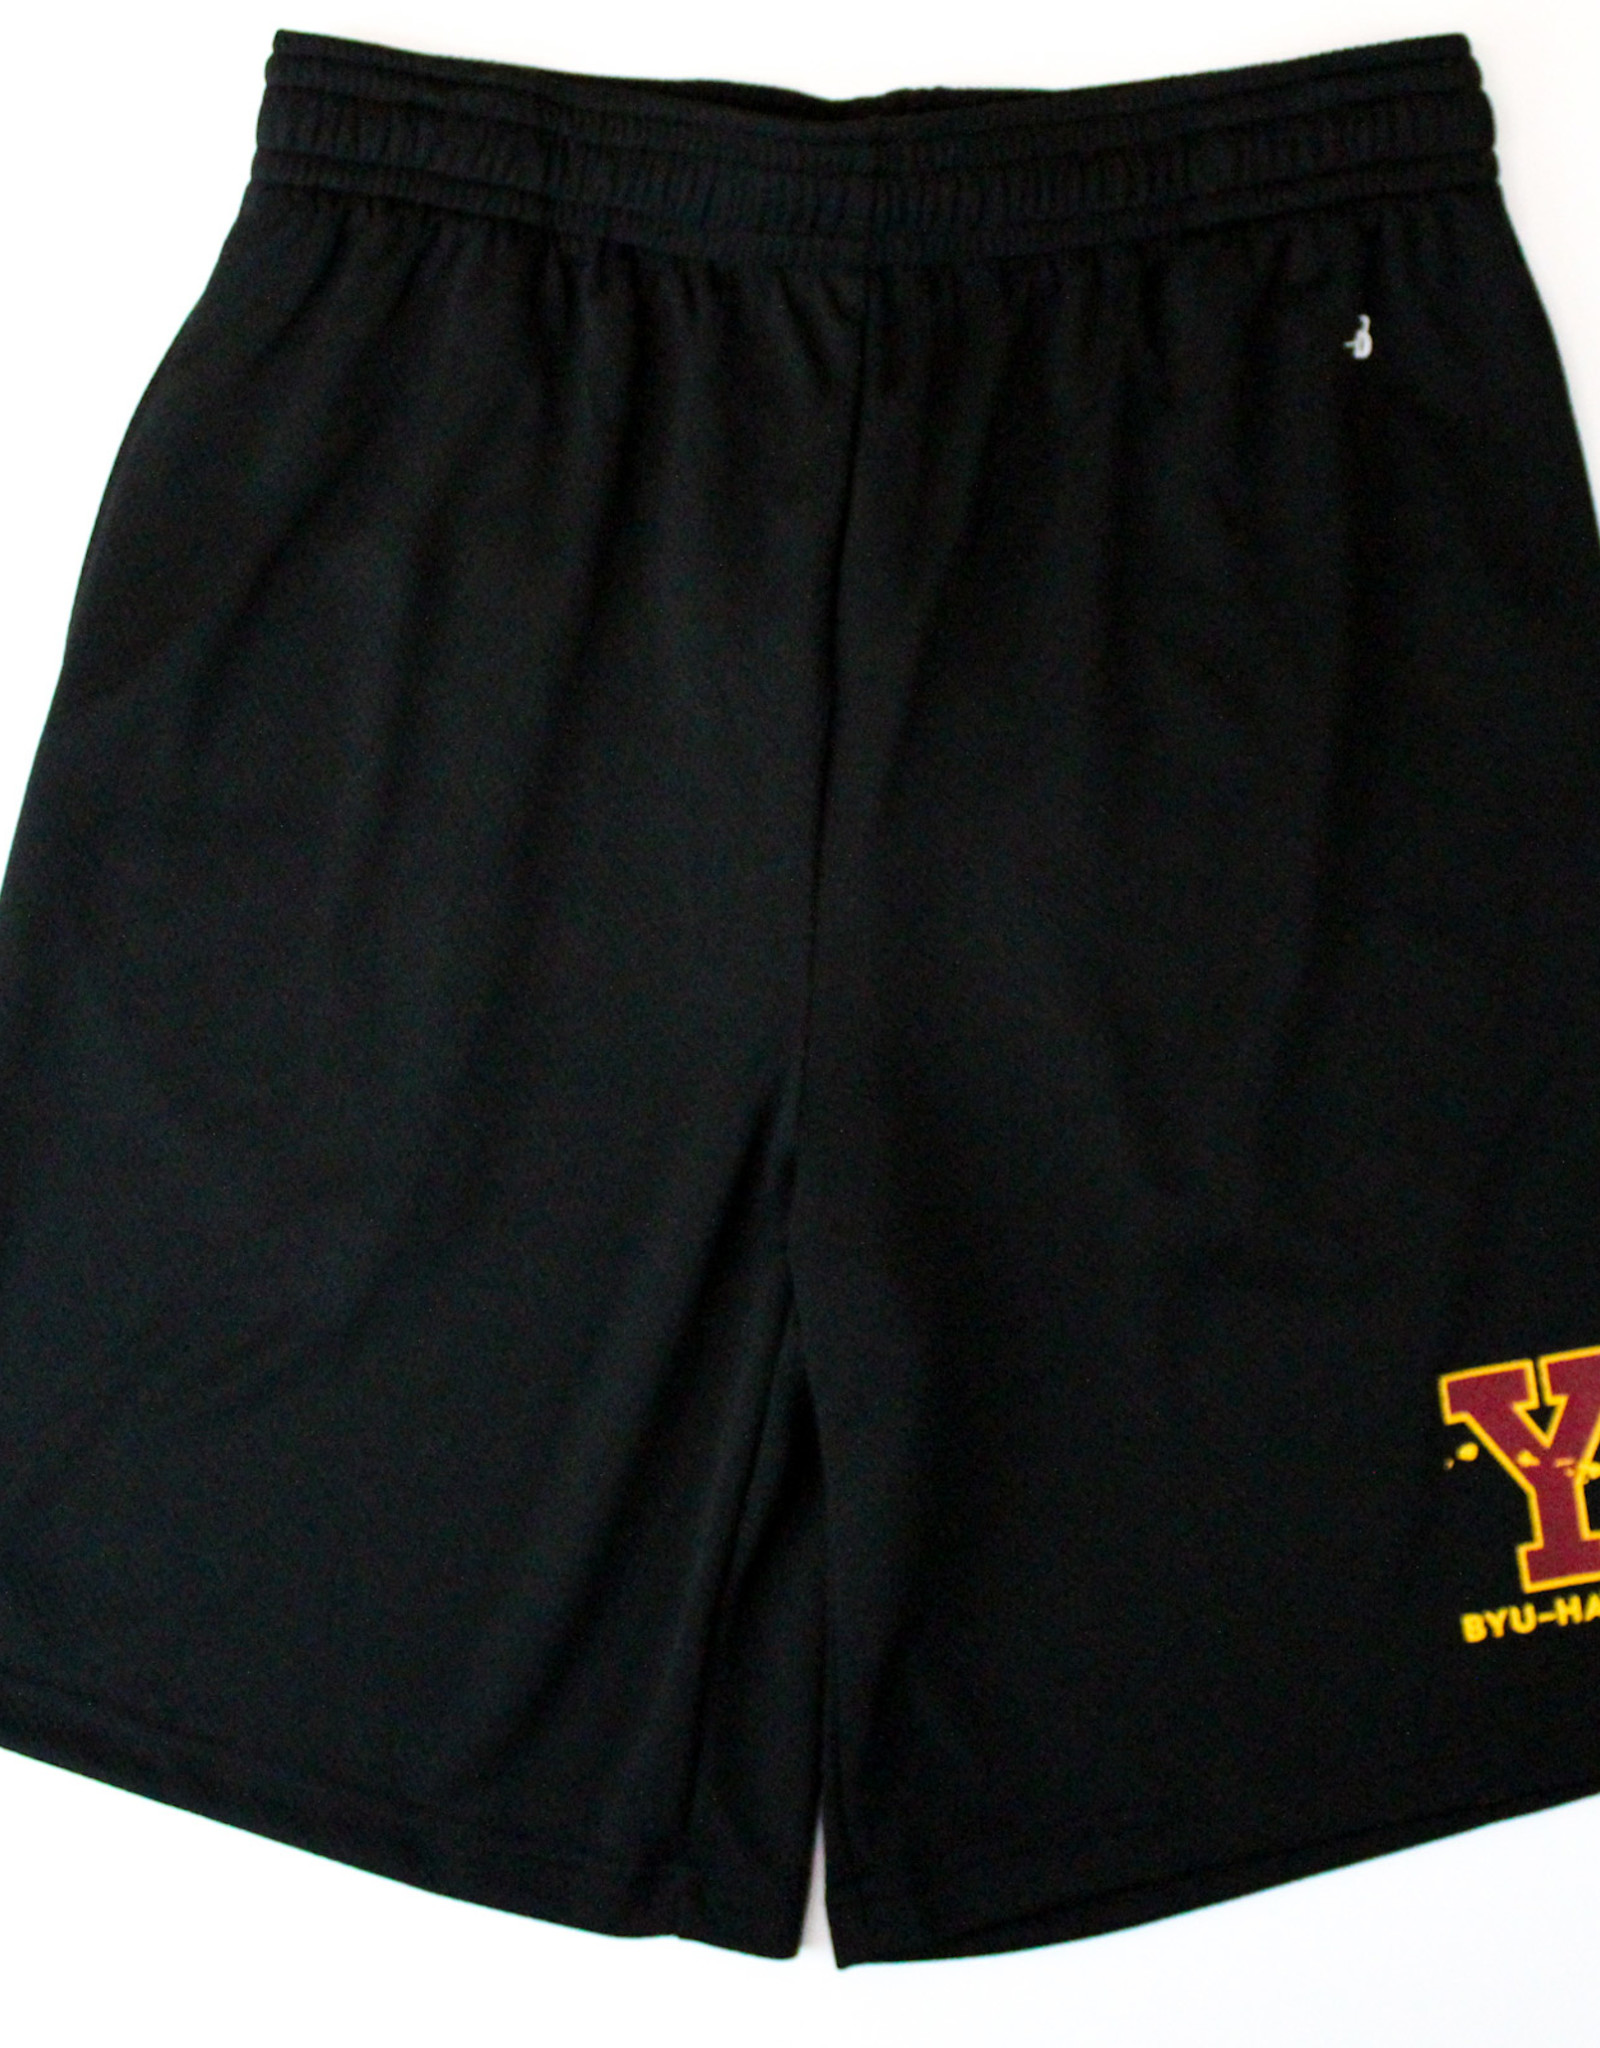 Y Islands Pocket Short